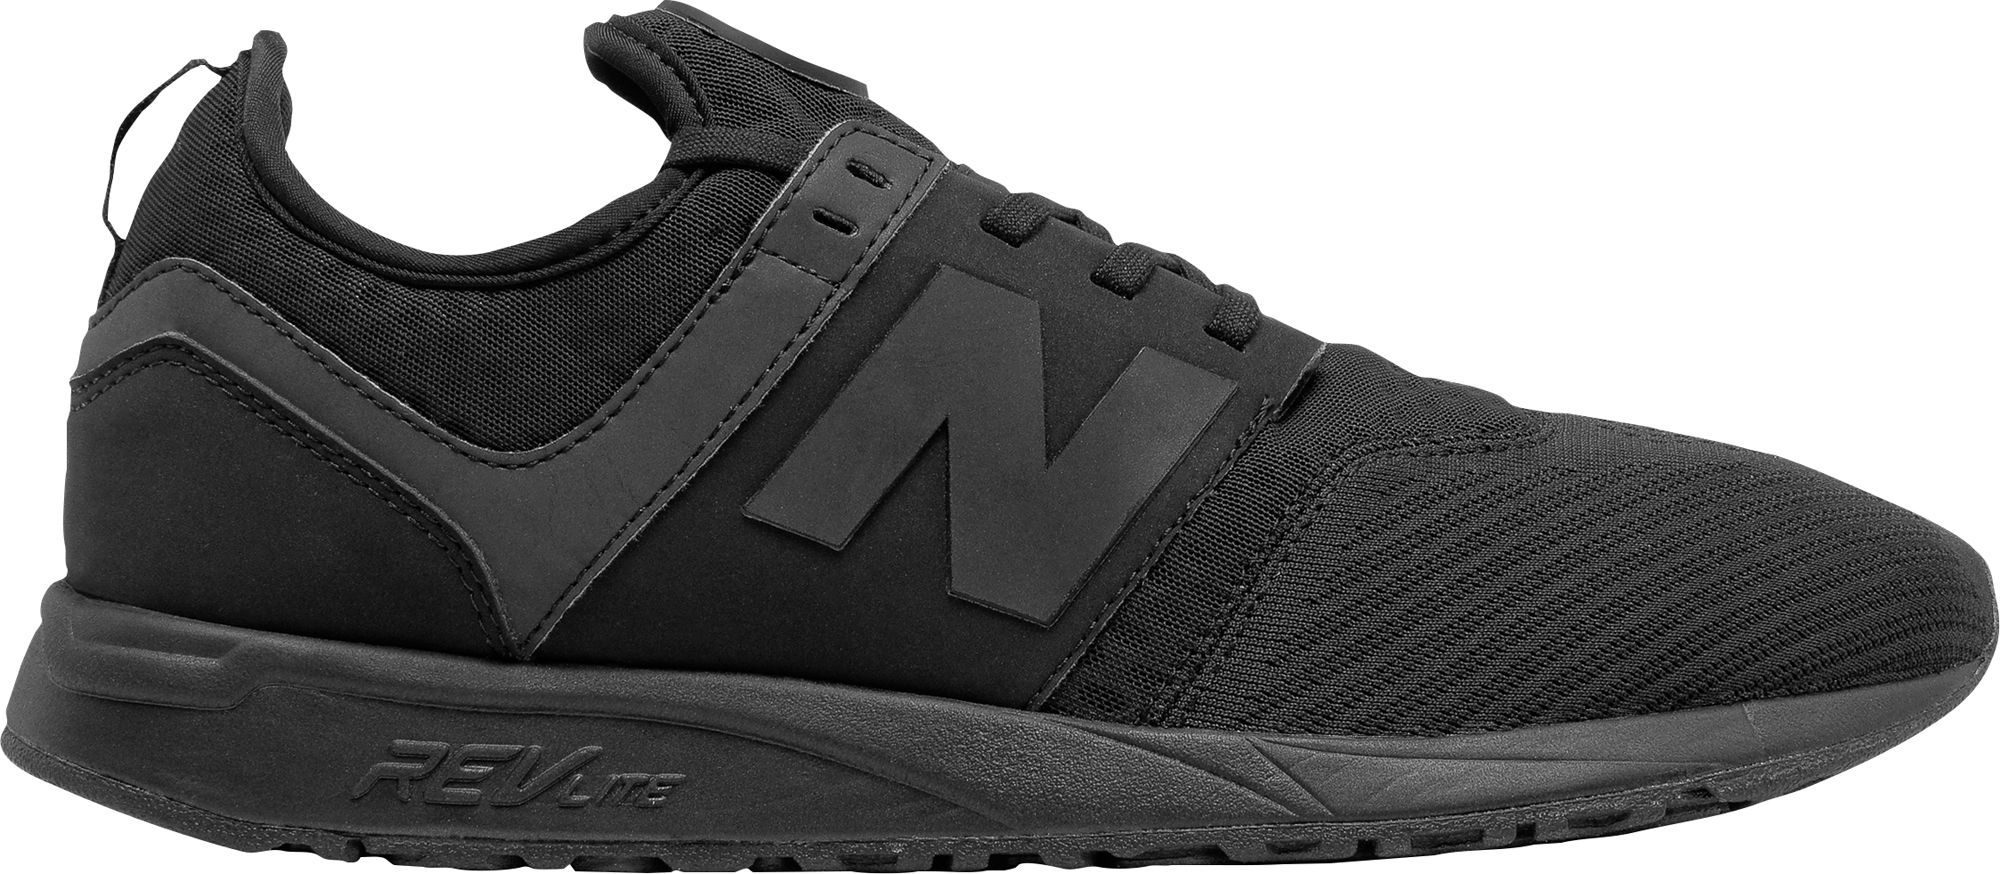 new balance 247 athletic sneaker